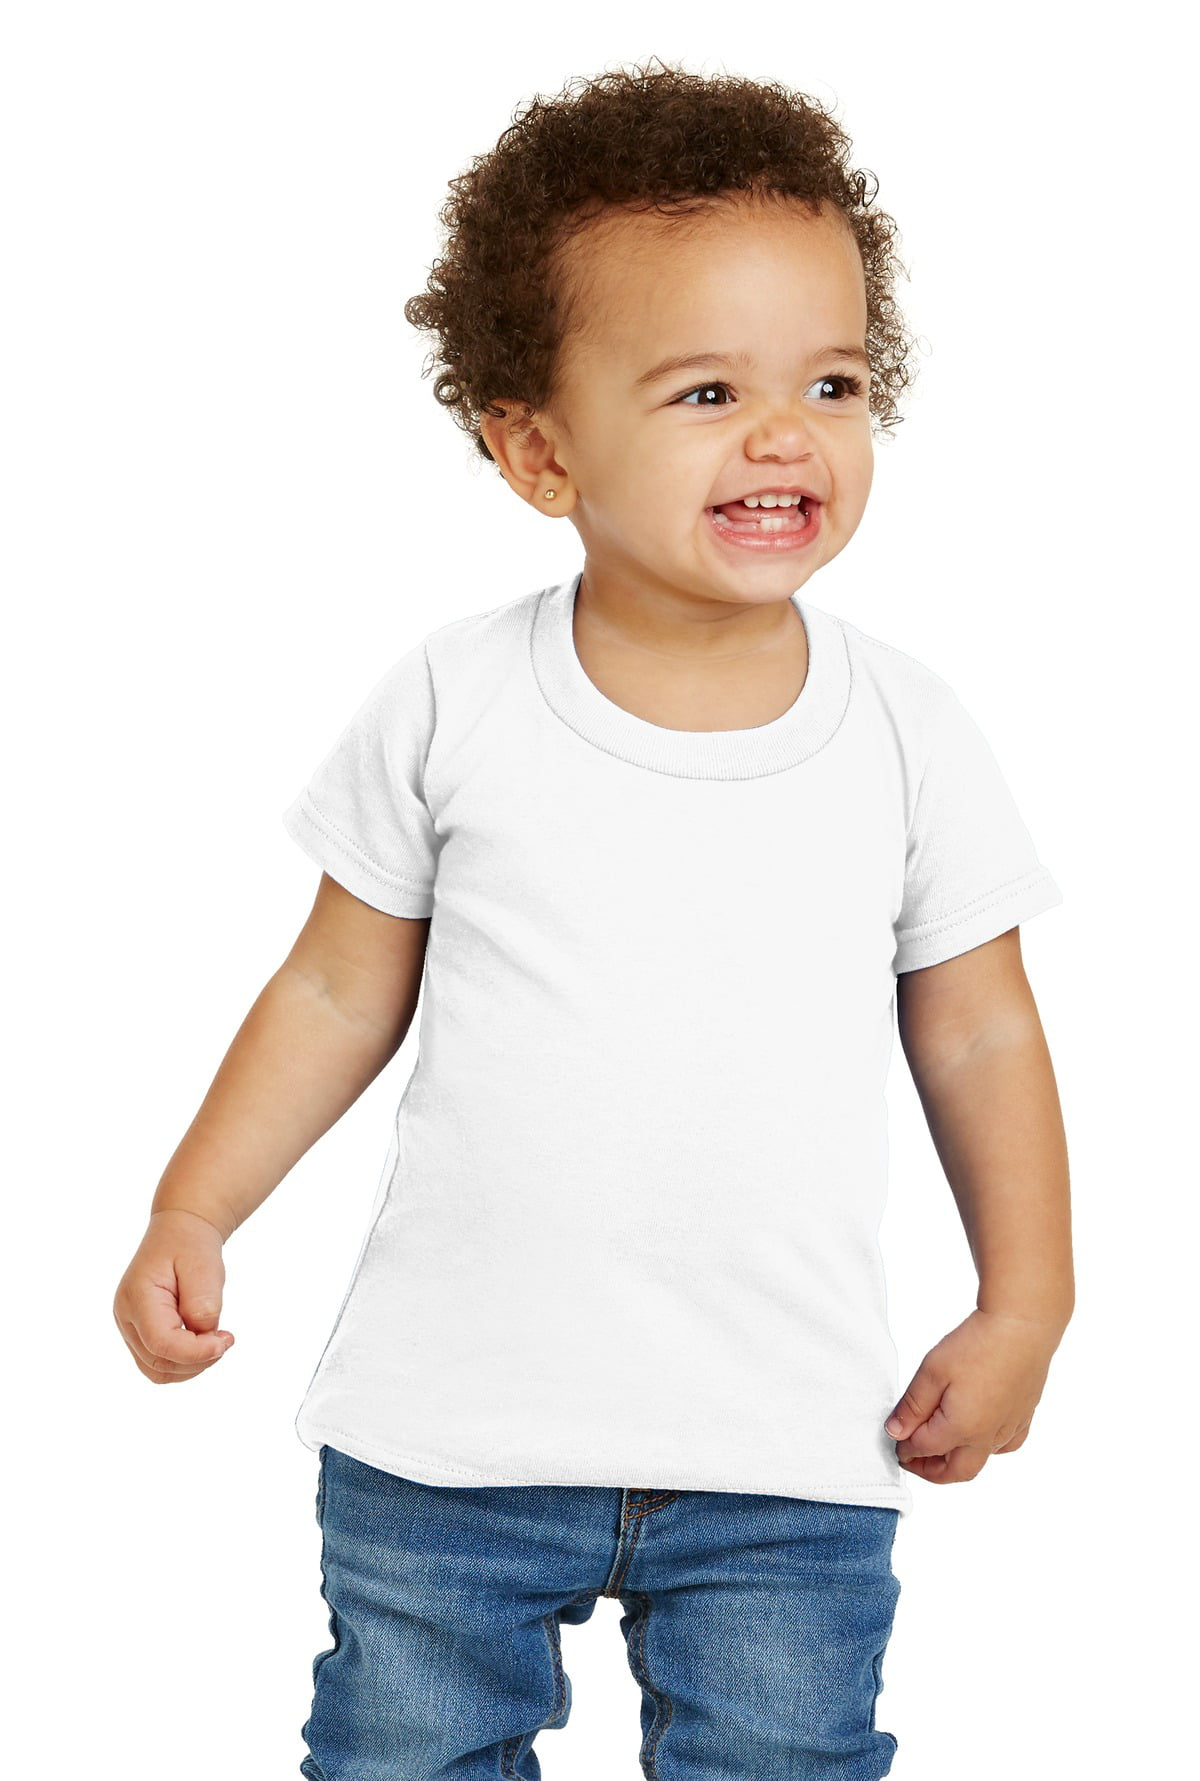 3bb73816 Gildan Activewear - Gildan Activewear Toddler Heavy Cotton T-Shirt. White.  5T. - Walmart.com